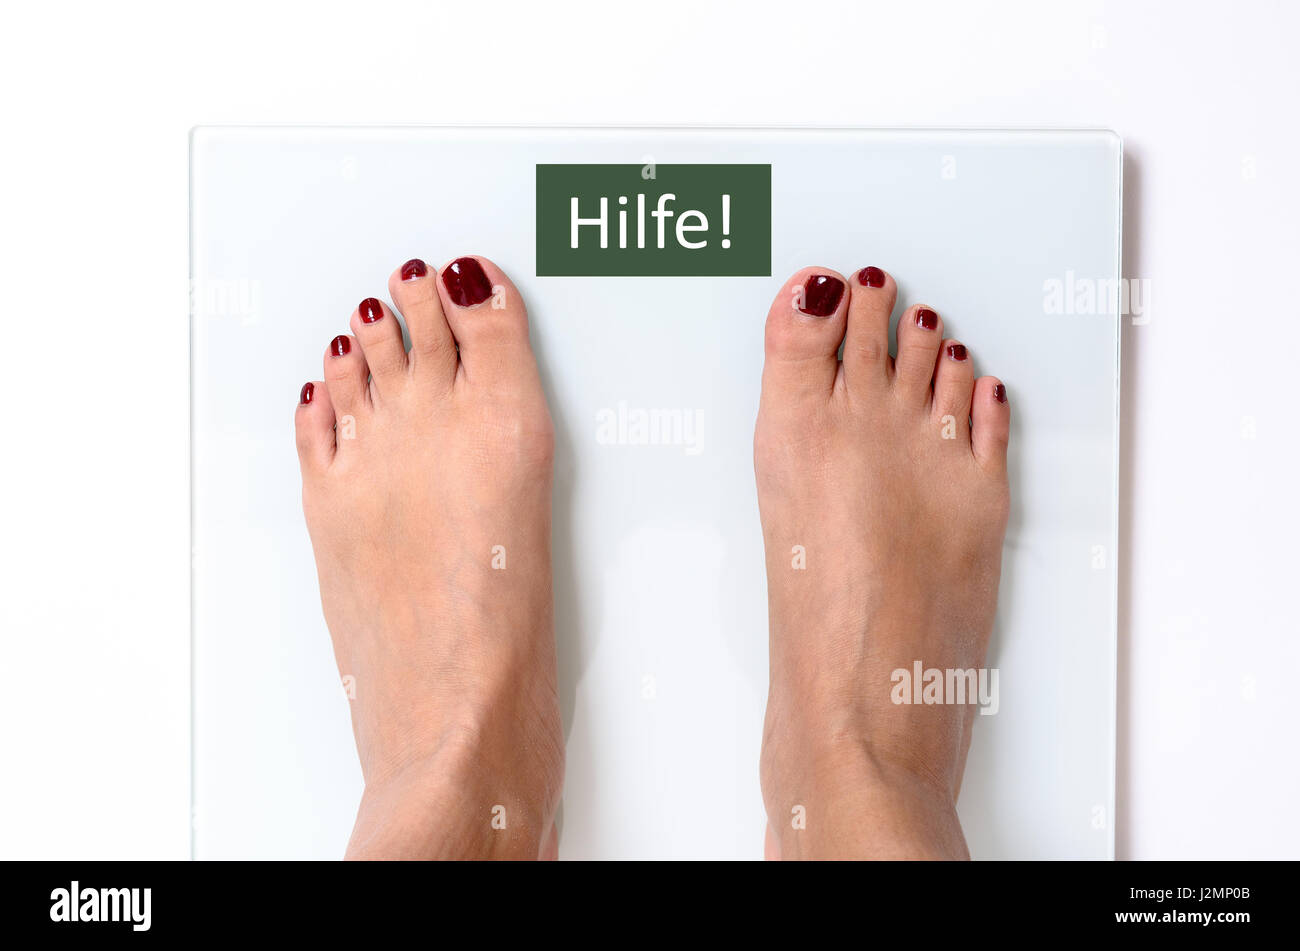 Close-up of incognito woman feet with red nail polish standing on white weight scales with word Hilfe on screen - Stock Image